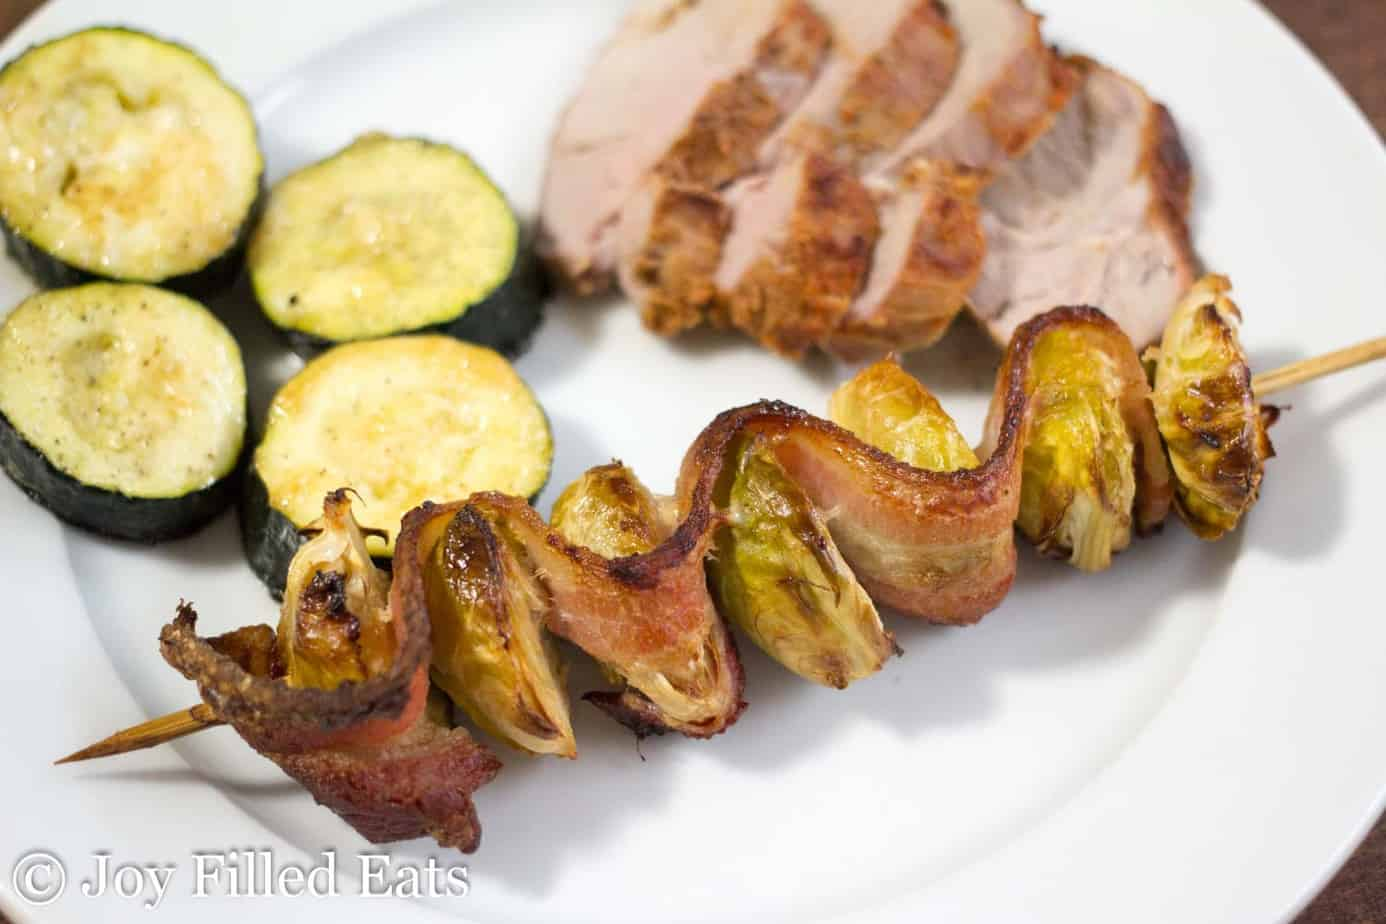 bacon & Brussels sprout kebab resting on a white plate with a side of zucchini and sliced pork